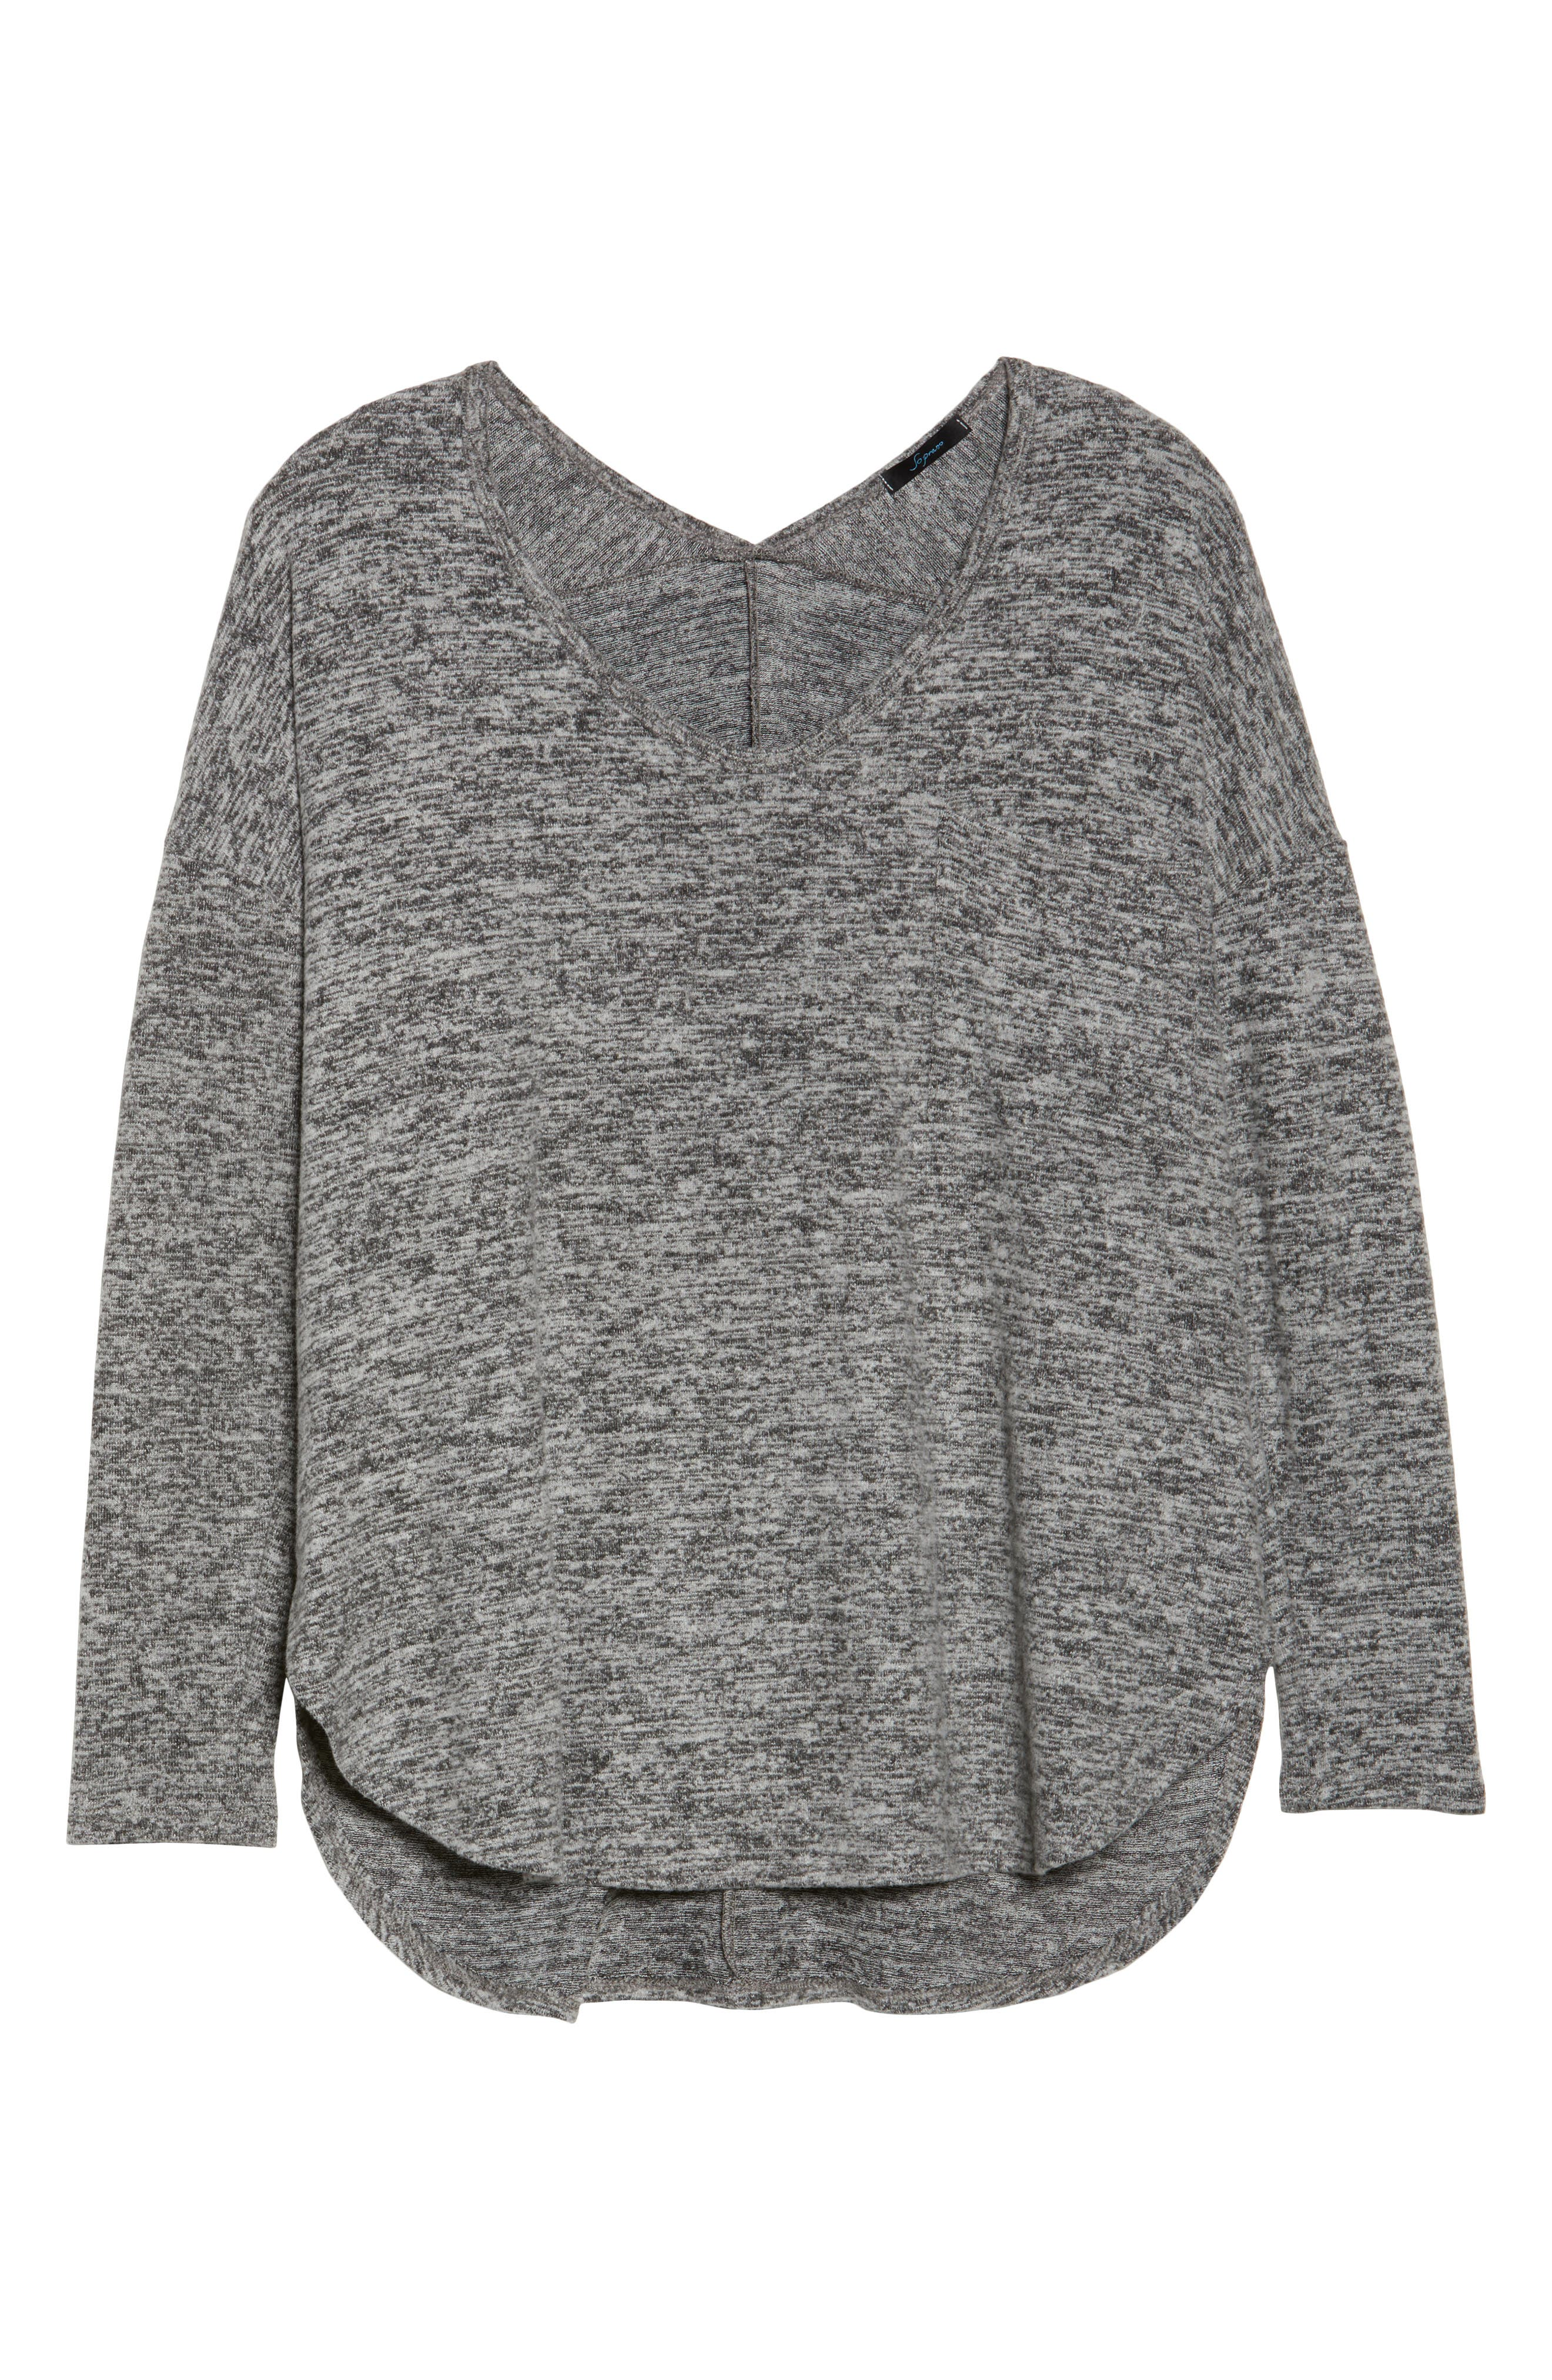 High/Low Knit Top,                             Alternate thumbnail 6, color,                             Charcoal Grey